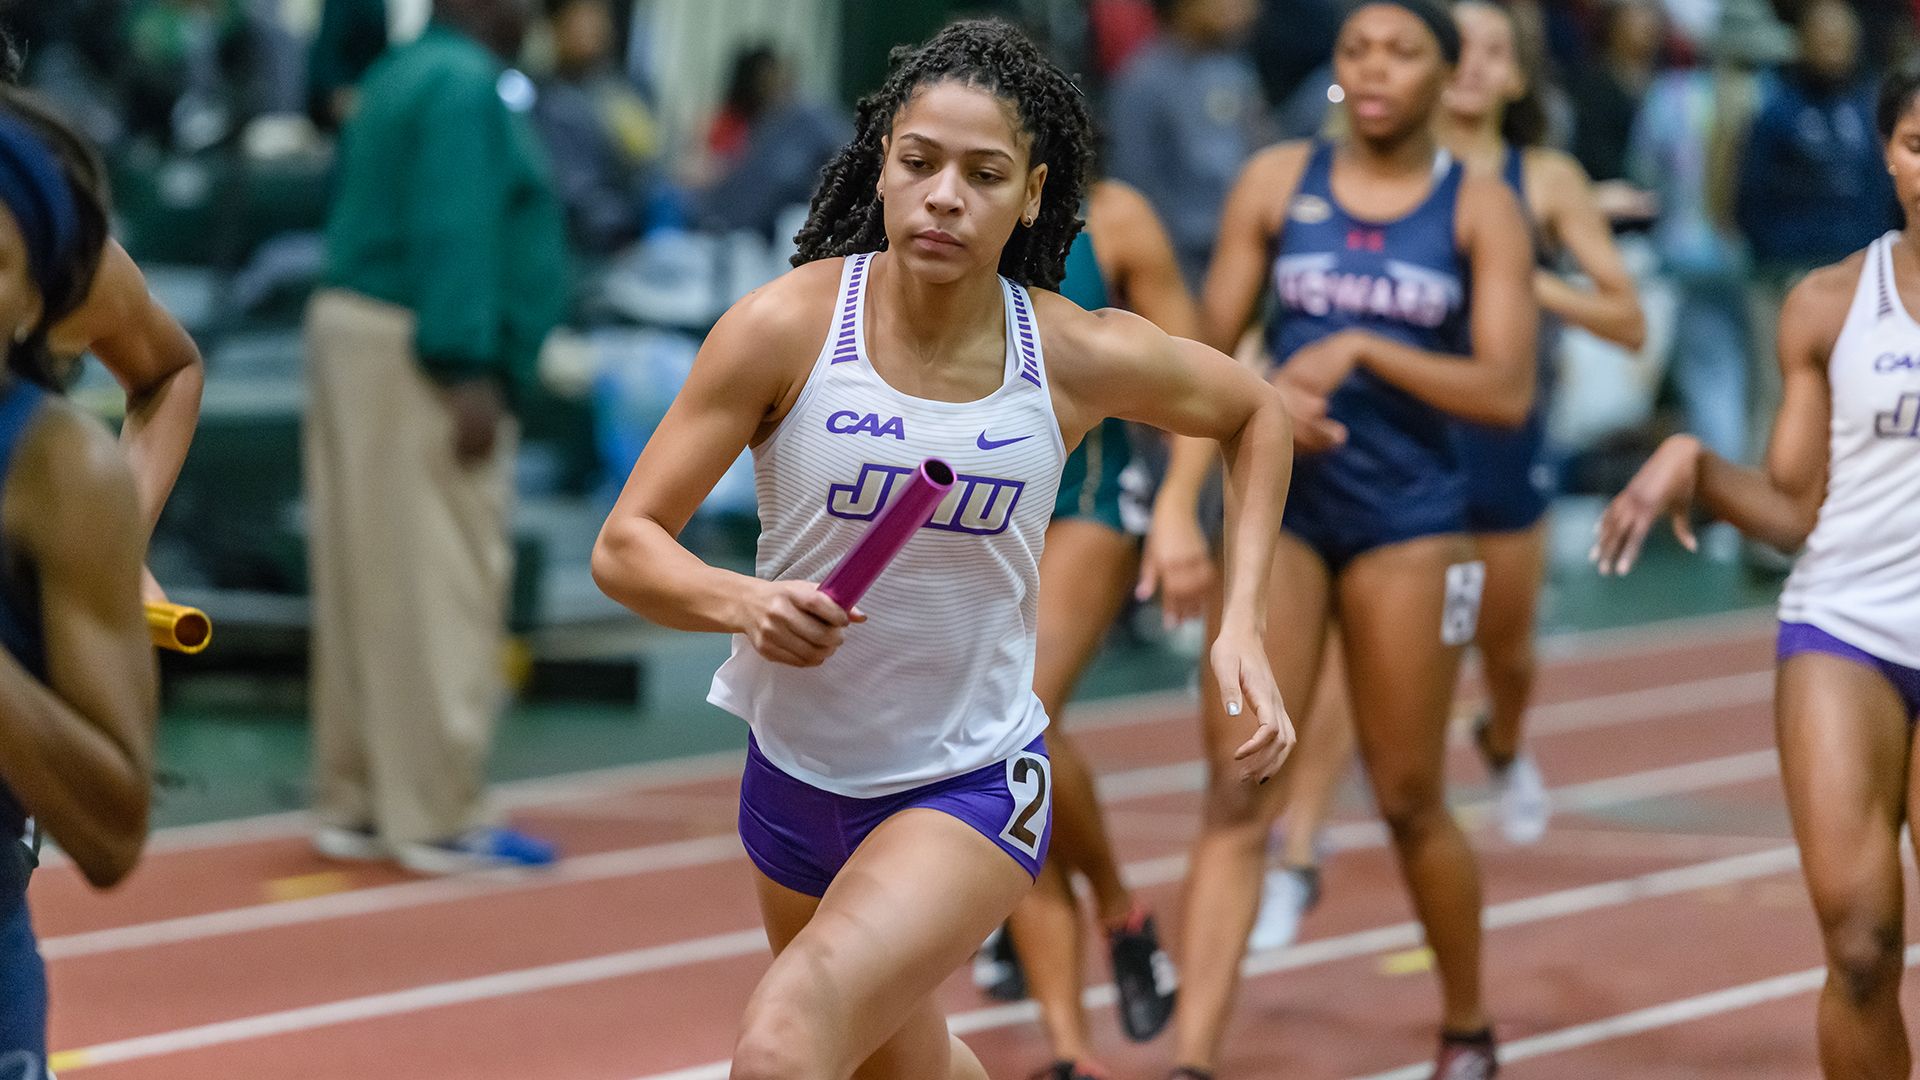 Track & Field: Relays Qualify for ECACs at Day One of Keydet Invitational